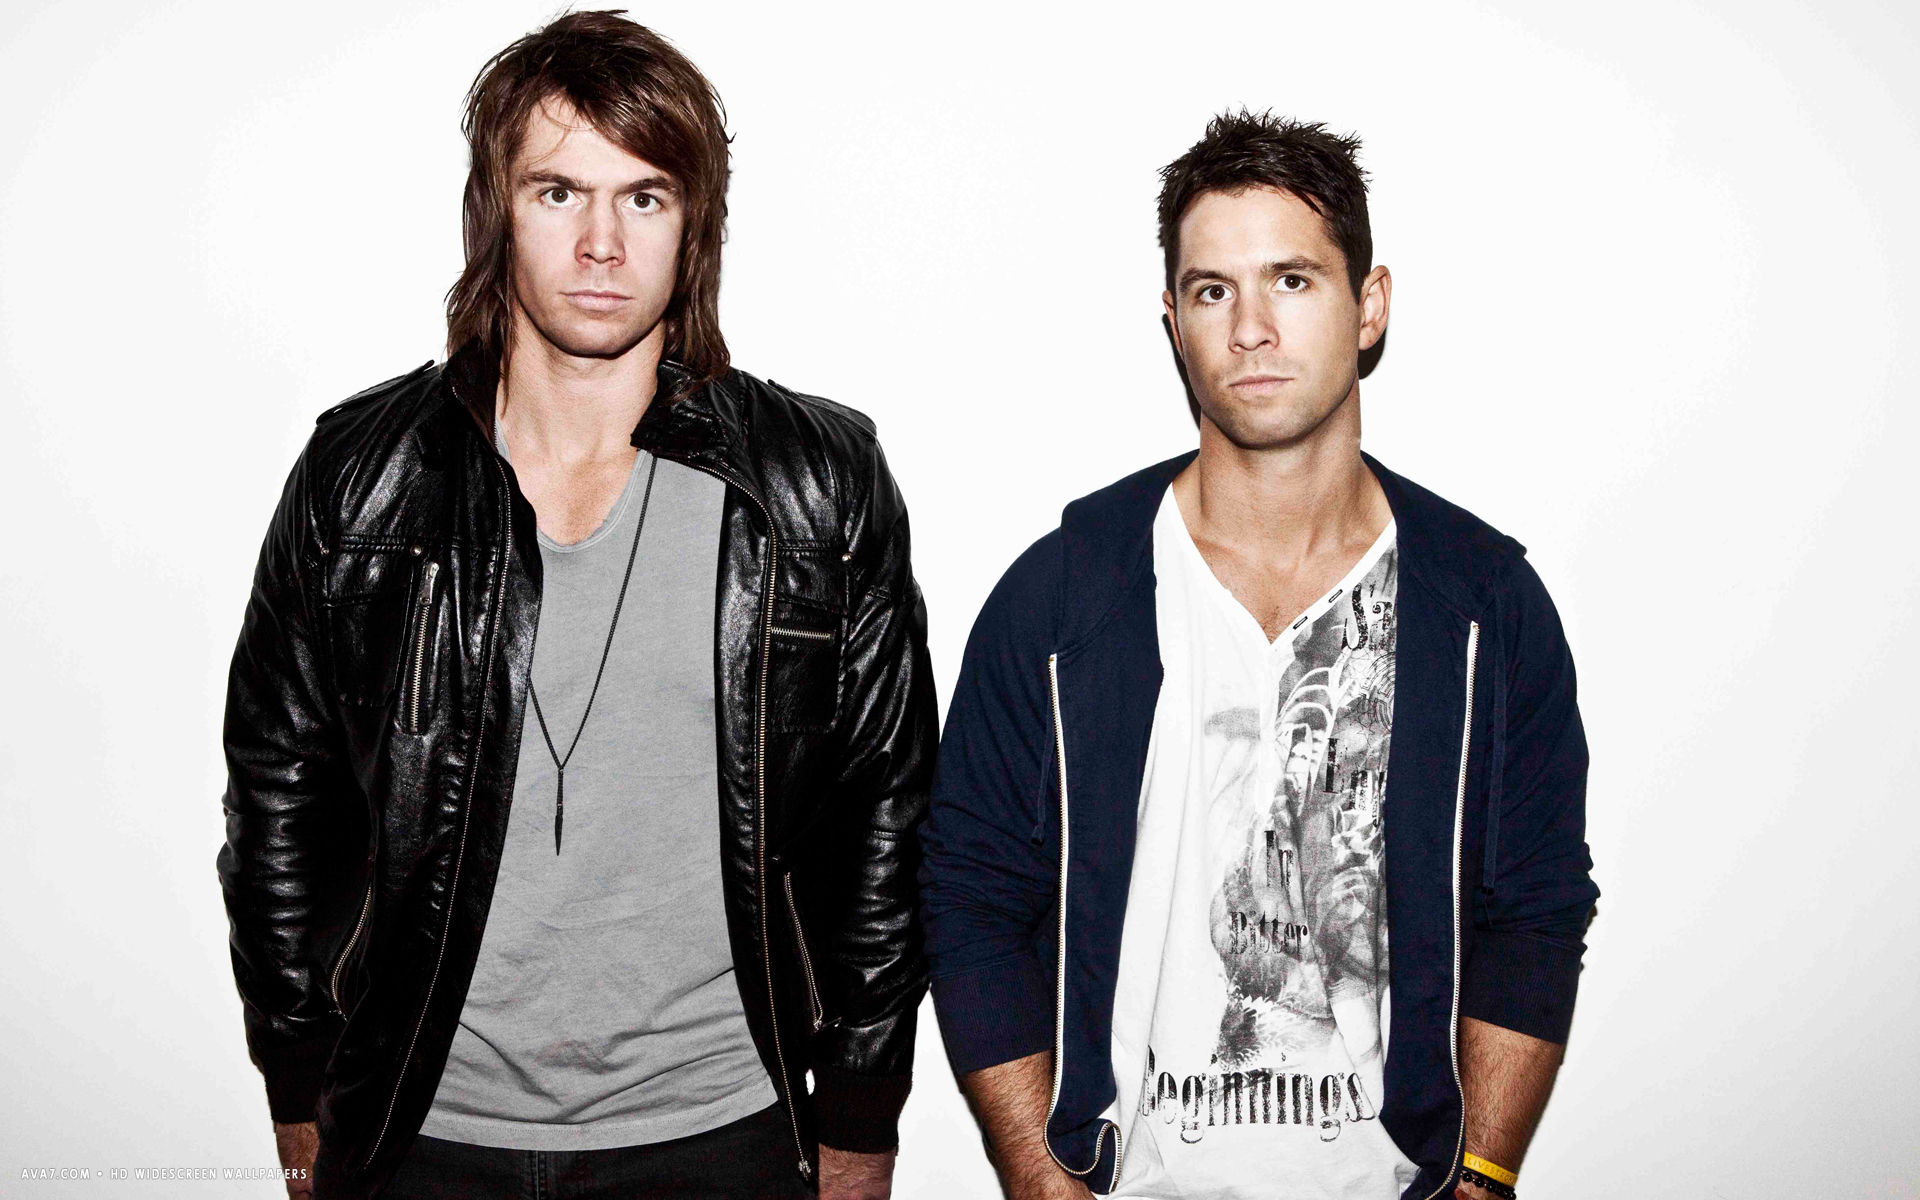 stafford brothers music band group hd widescreen wallpaper